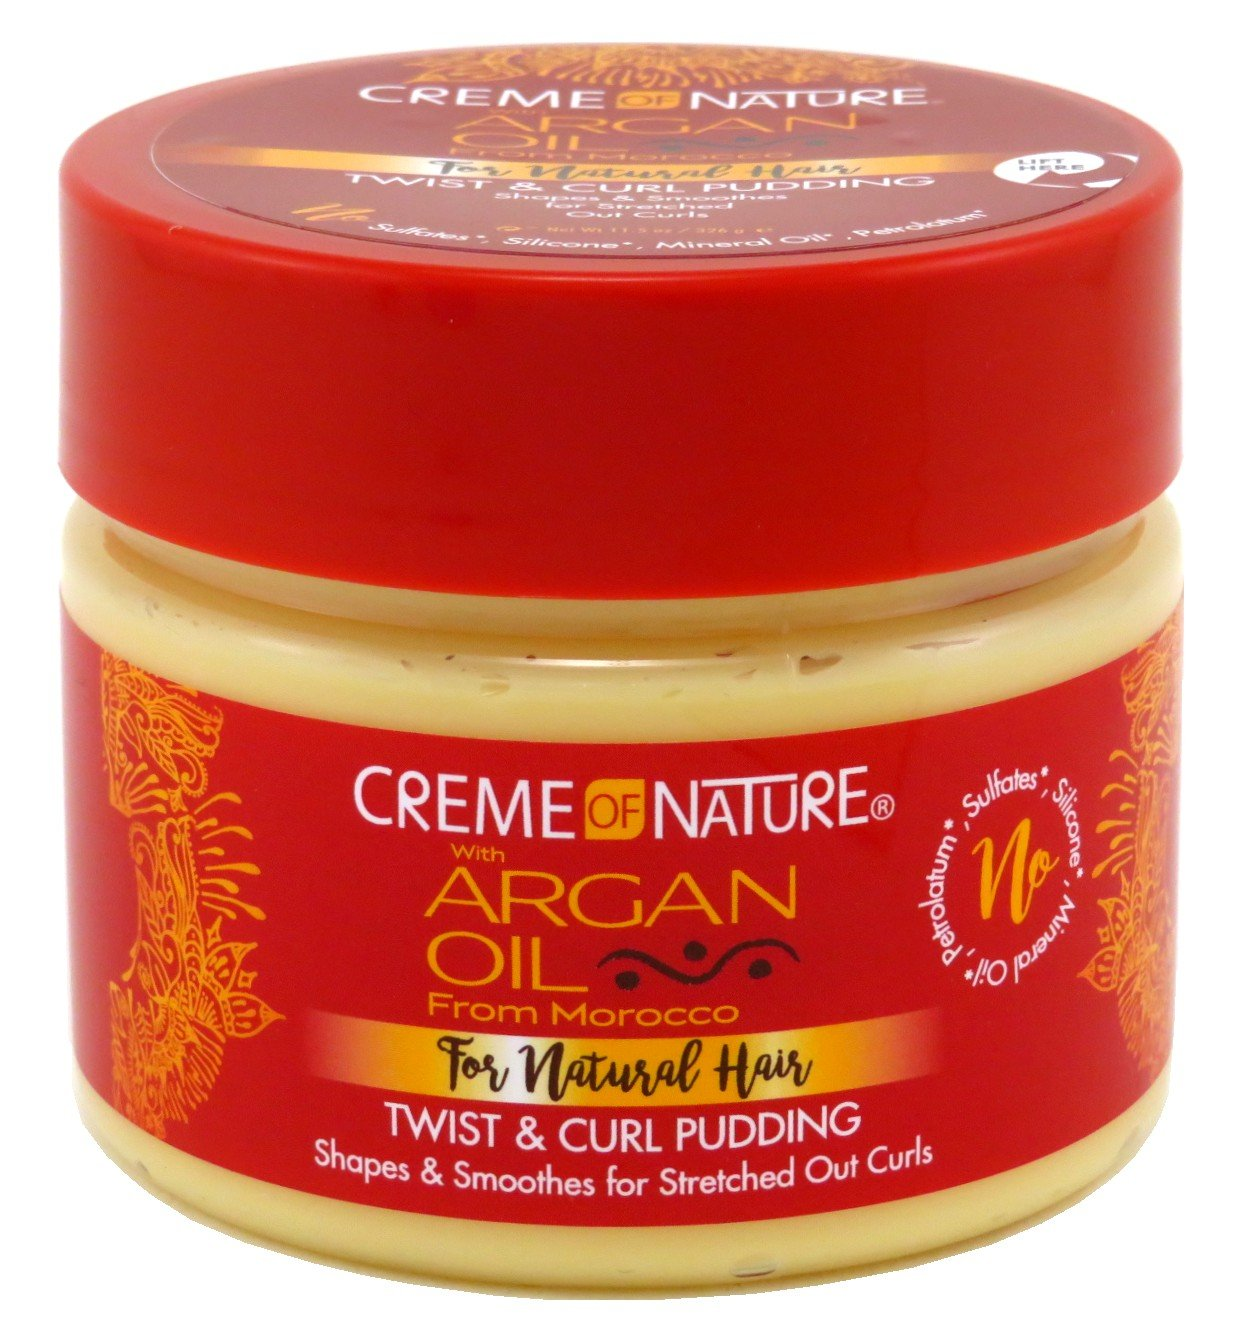 Creme Of Nature Argan Oil Twist & Curl Pudding 11.5 Ounce (340ml) (3 Pack)